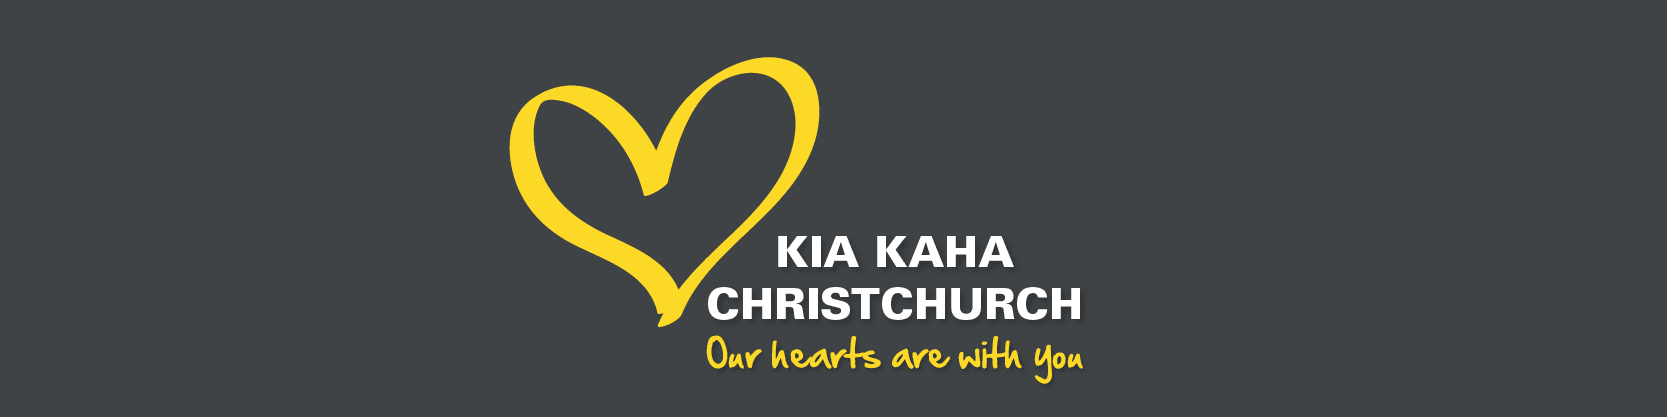 Kia Kaha Christchurch Our Heats Are With You